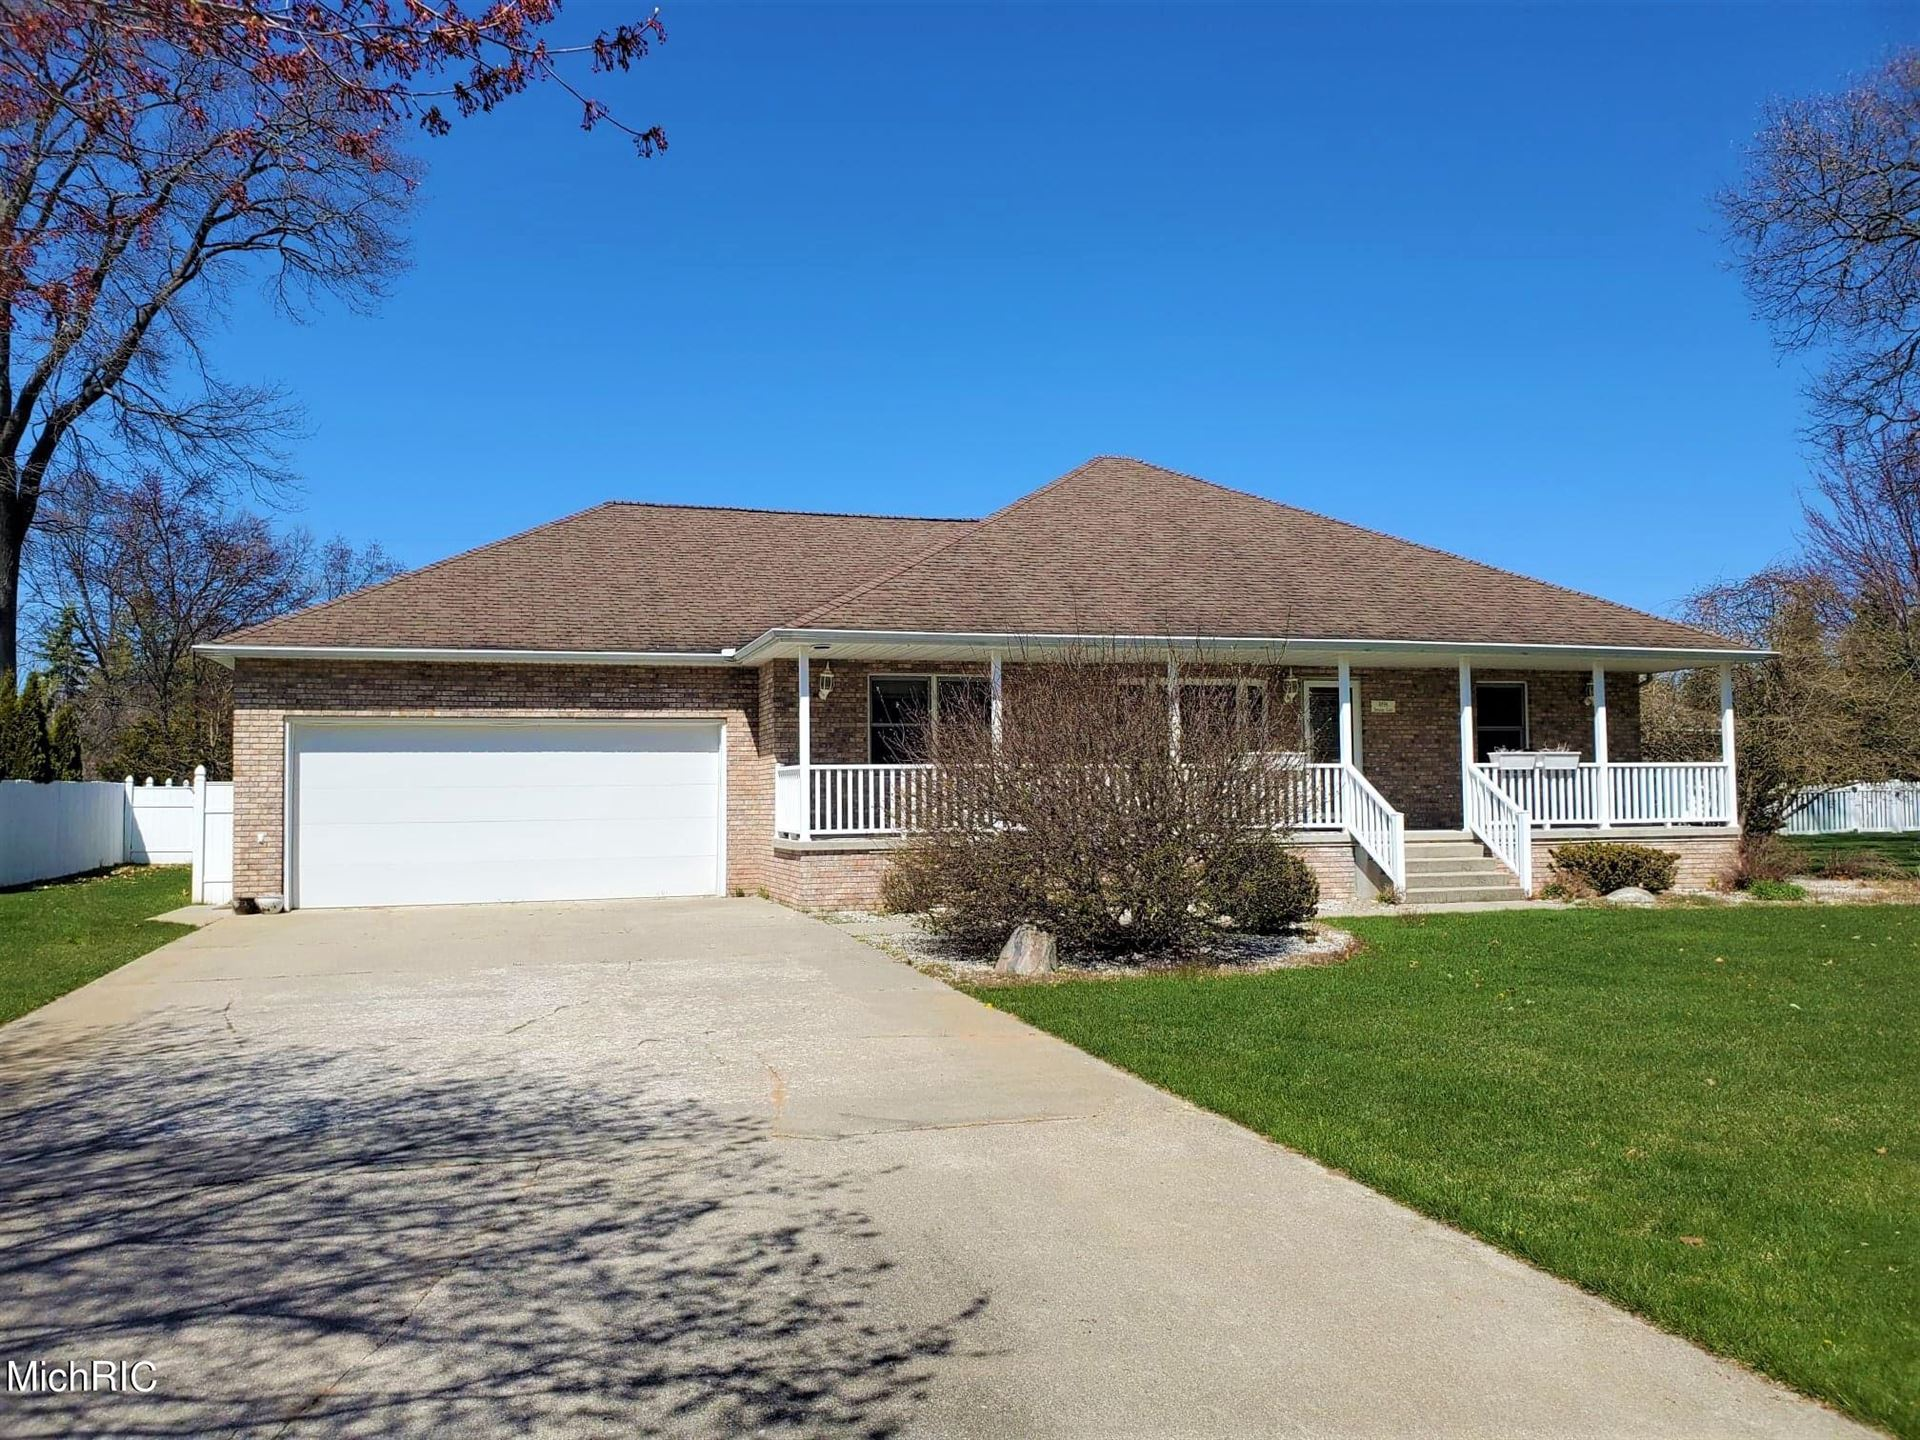 4896 Townsend Court, Montague, MI 49437 - MLS#: 21010890